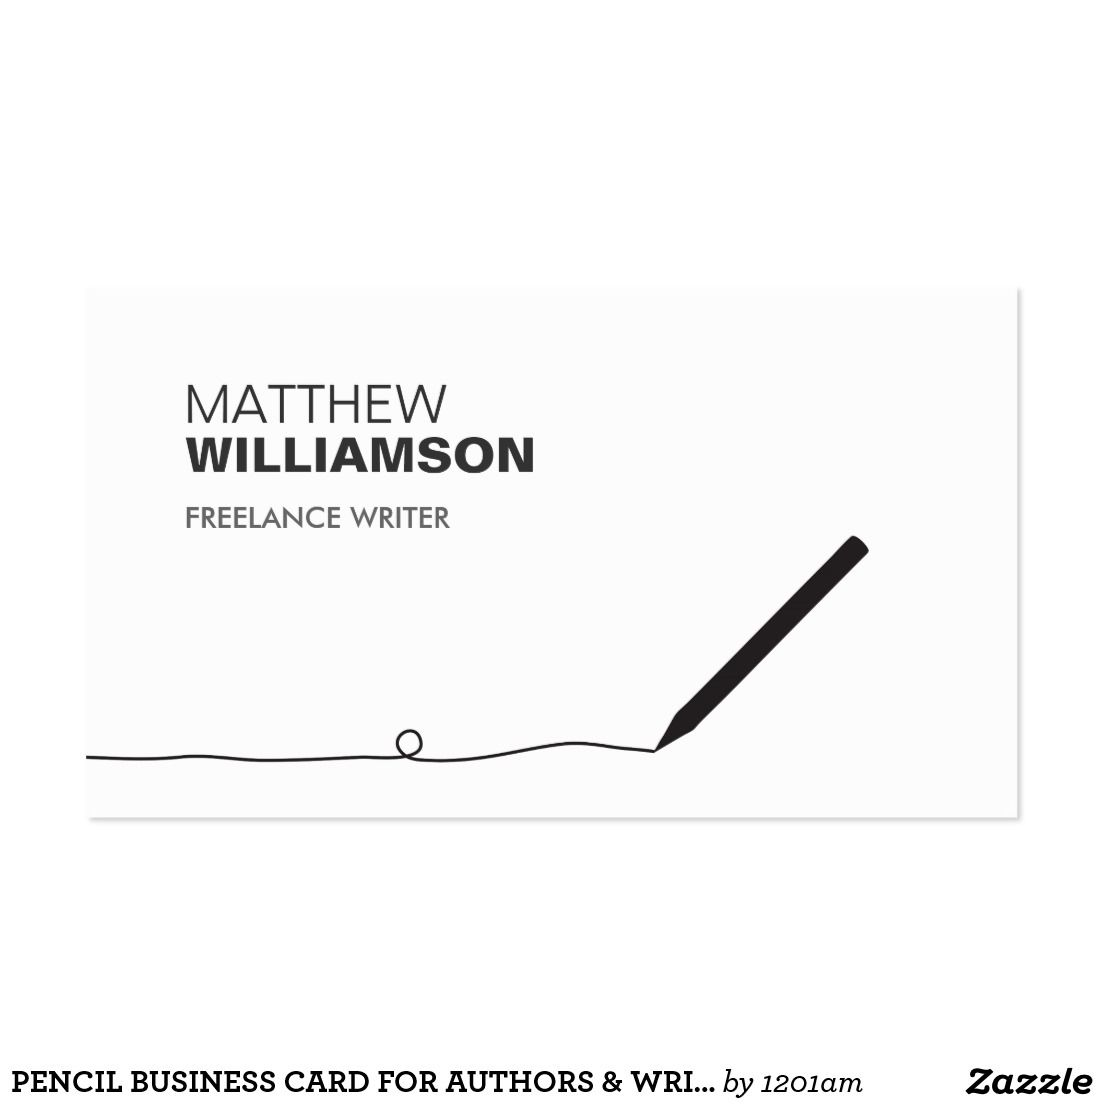 PENCIL BUSINESS CARD FOR AUTHORS & WRITERS | Business Cards ...